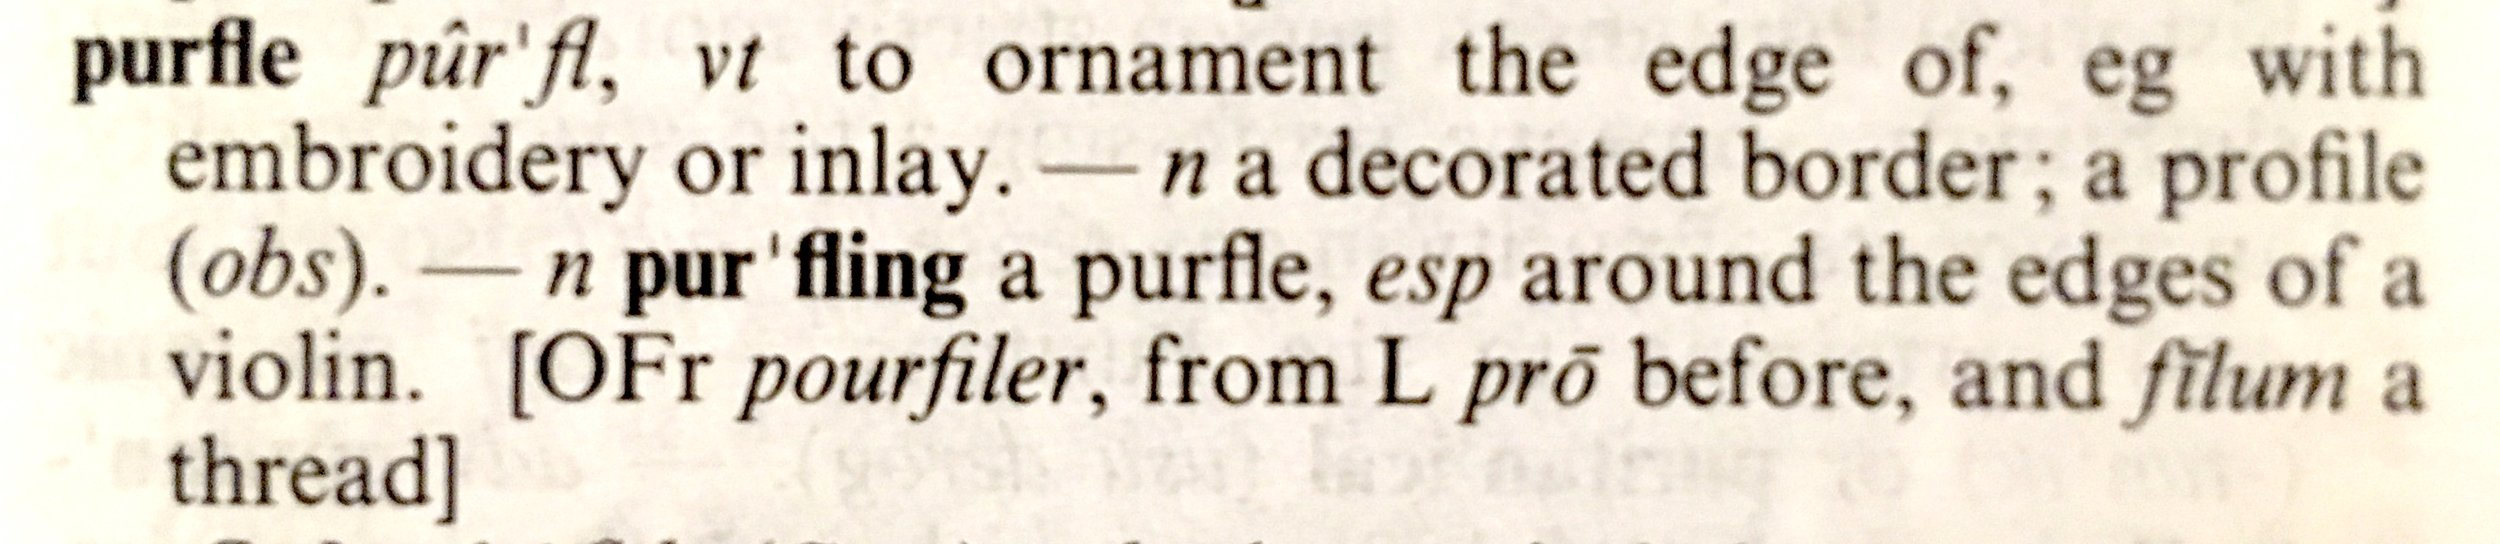 randomly selected word from the dictionary: Purfle